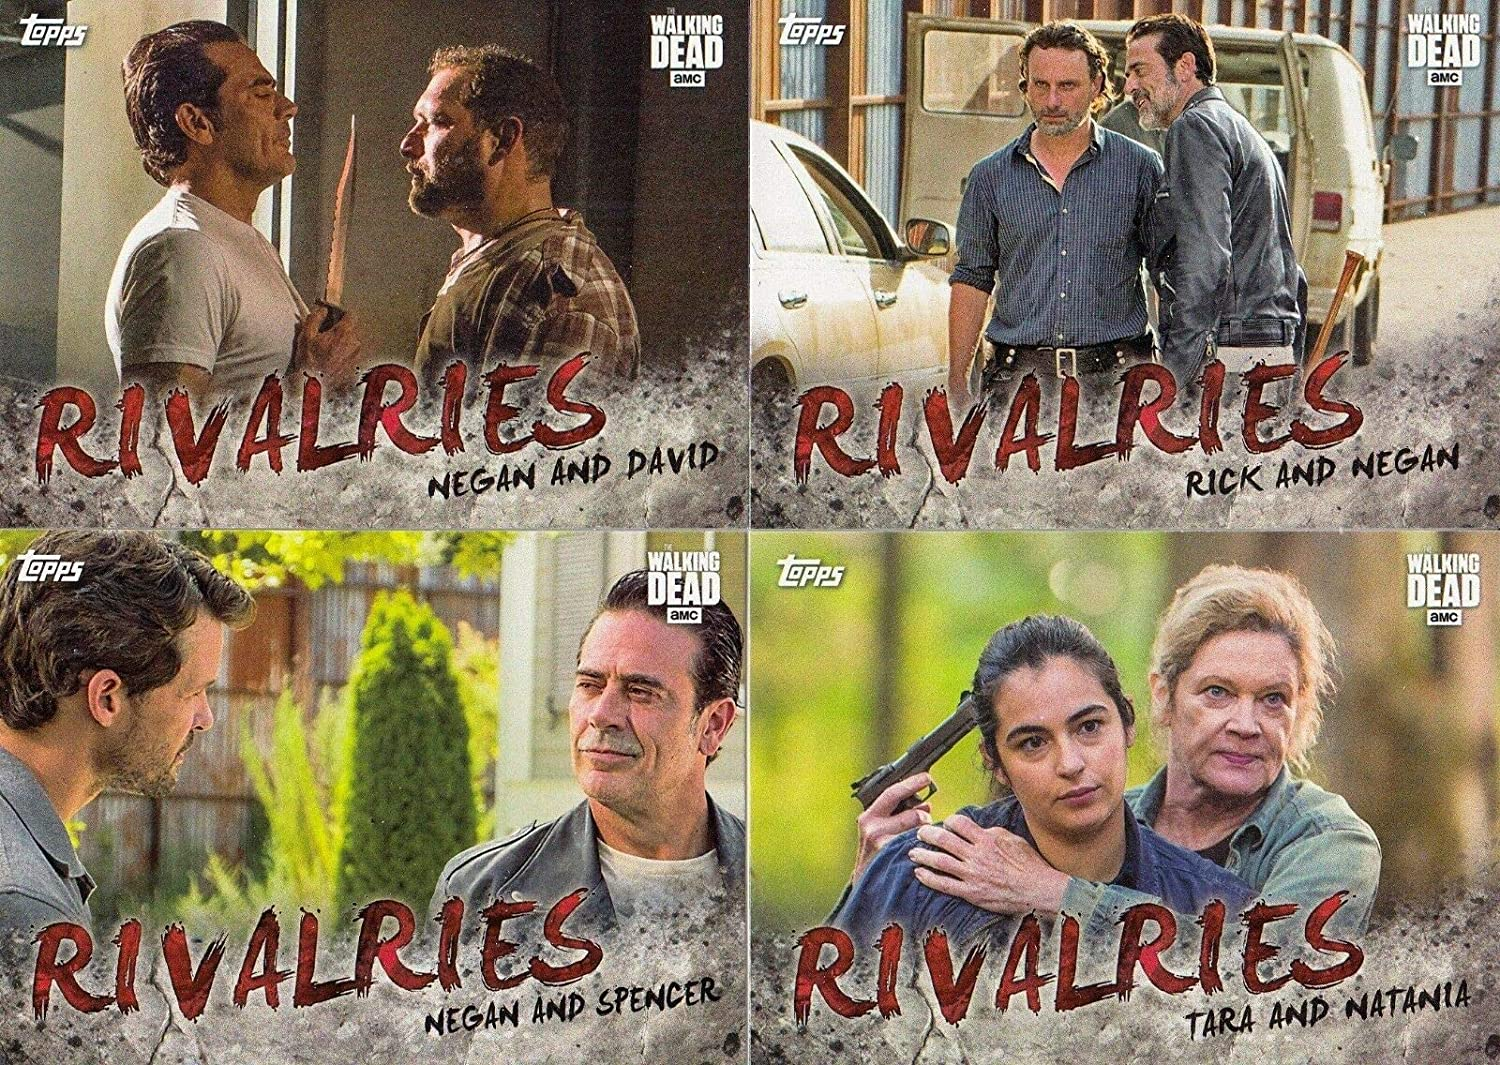 2017 Topps The Walking Dead Season 7 Rivalries Insert #R-1 Rick VS Negan